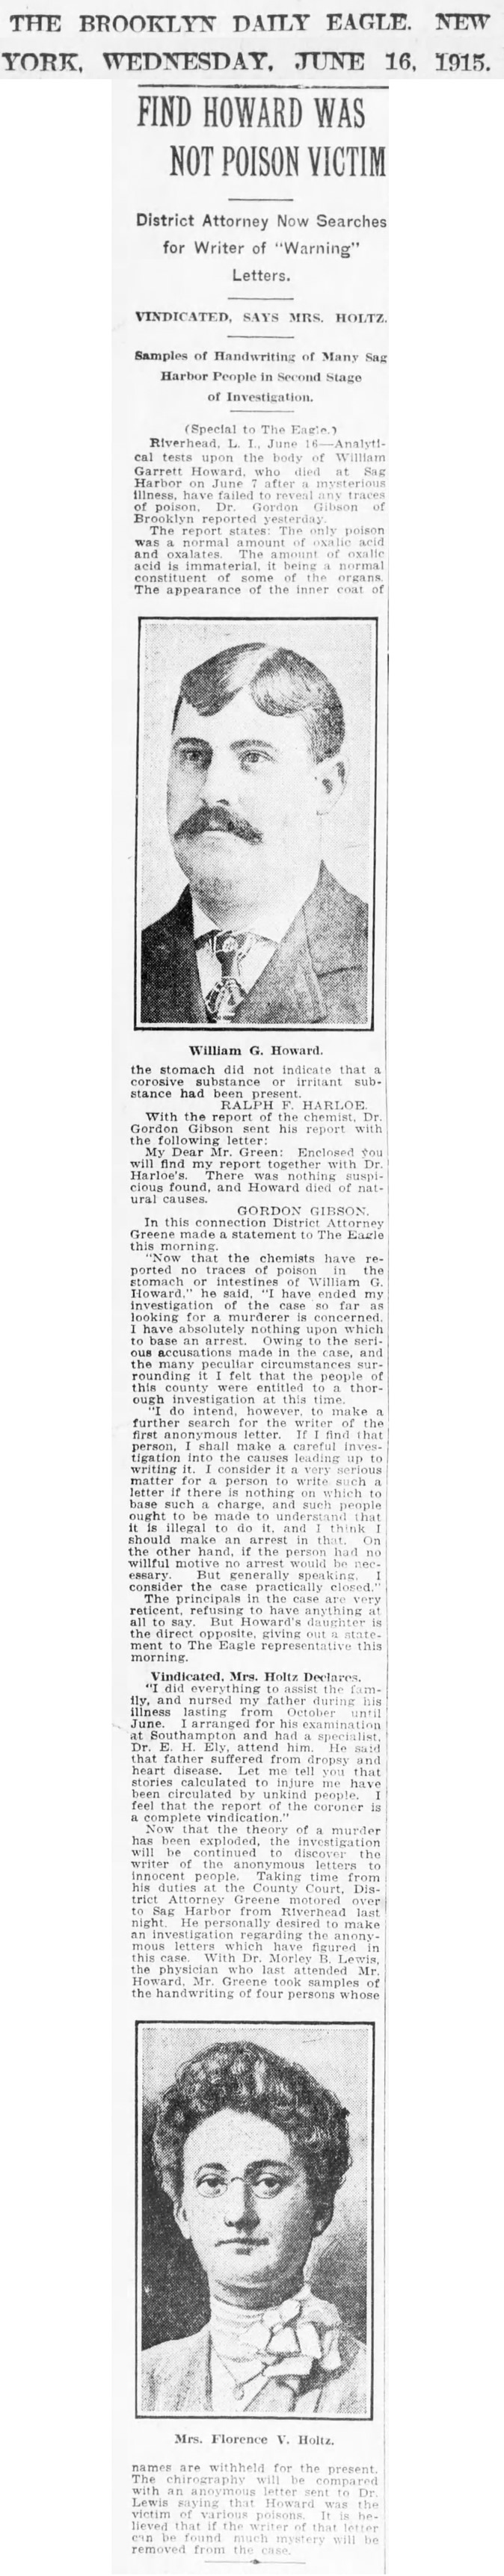 A28  6-16-1915 The Brooklyn Daily Eagle Wednesday Results